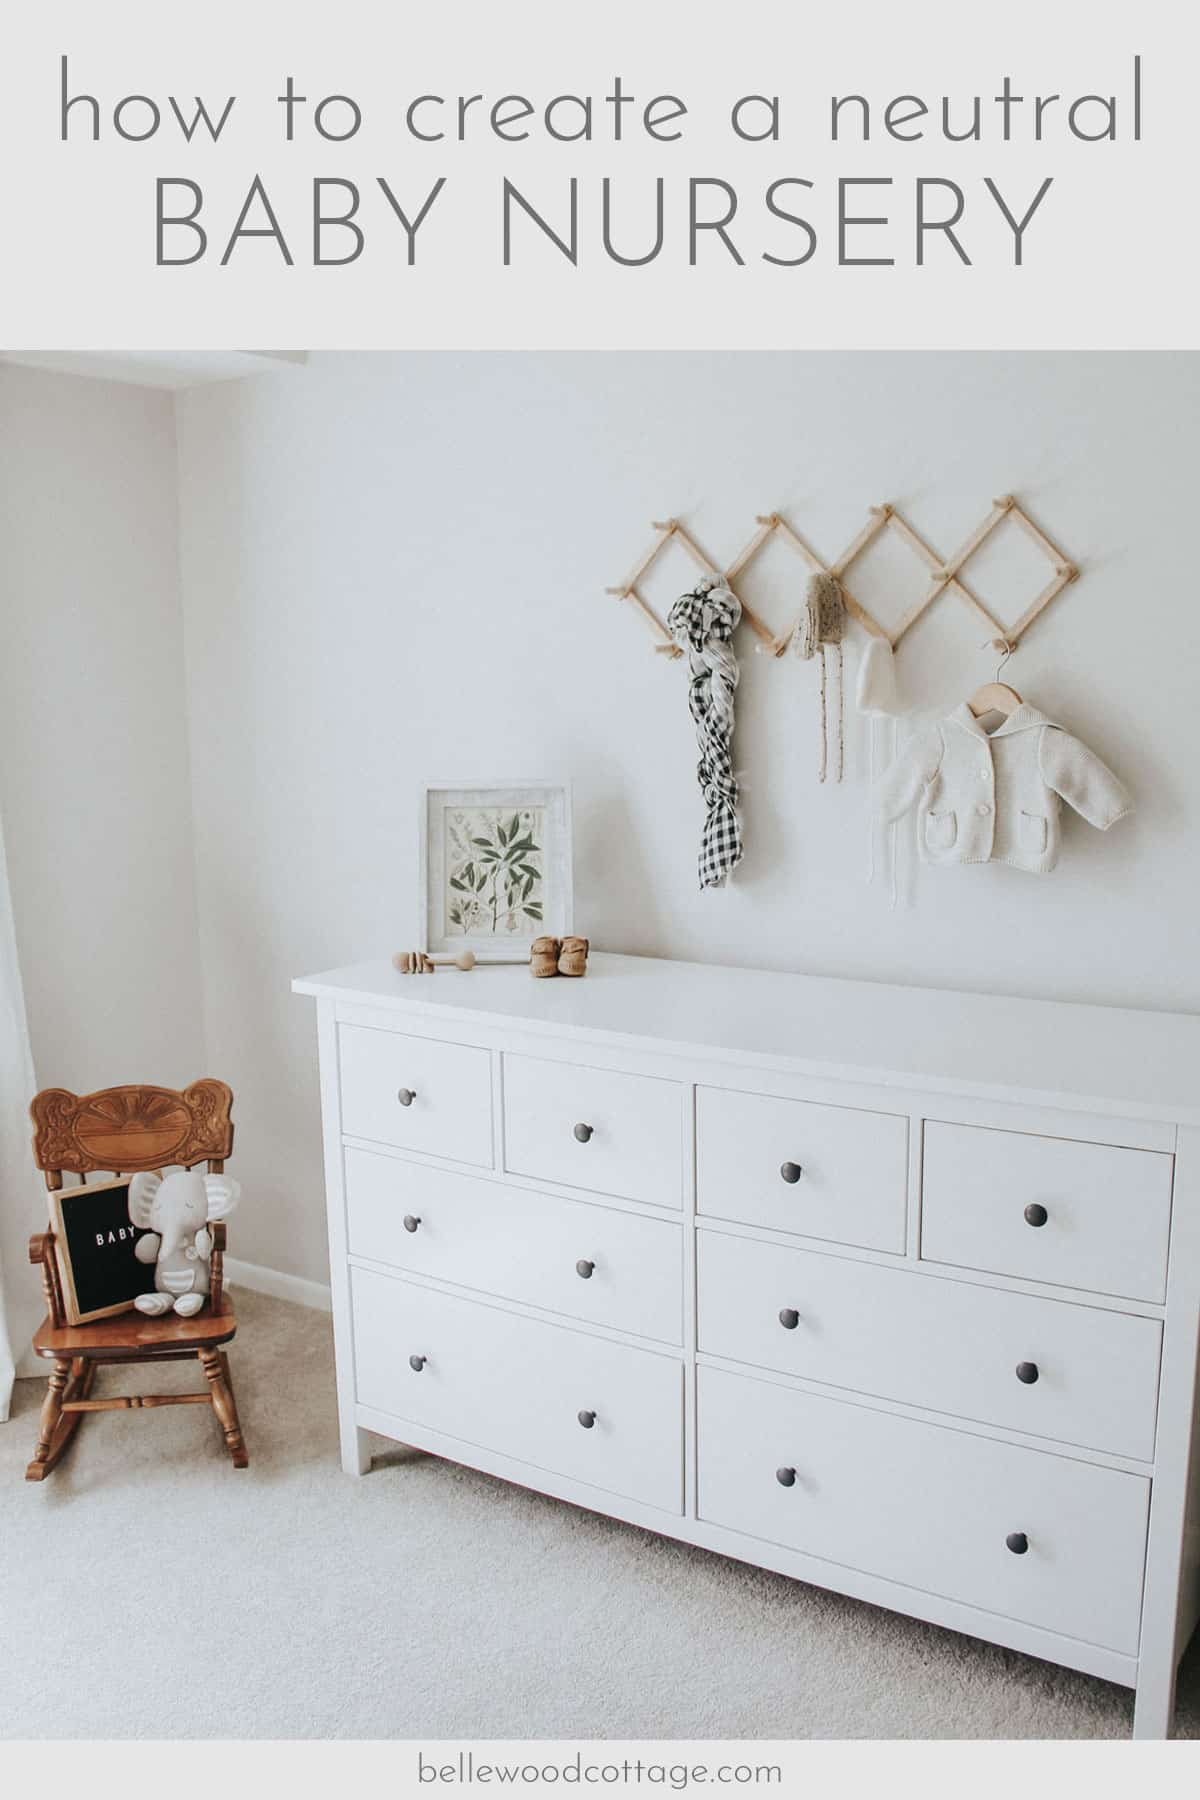 Rocking chair, white dresser, and wall rack with baby garments in a neutral nursery.